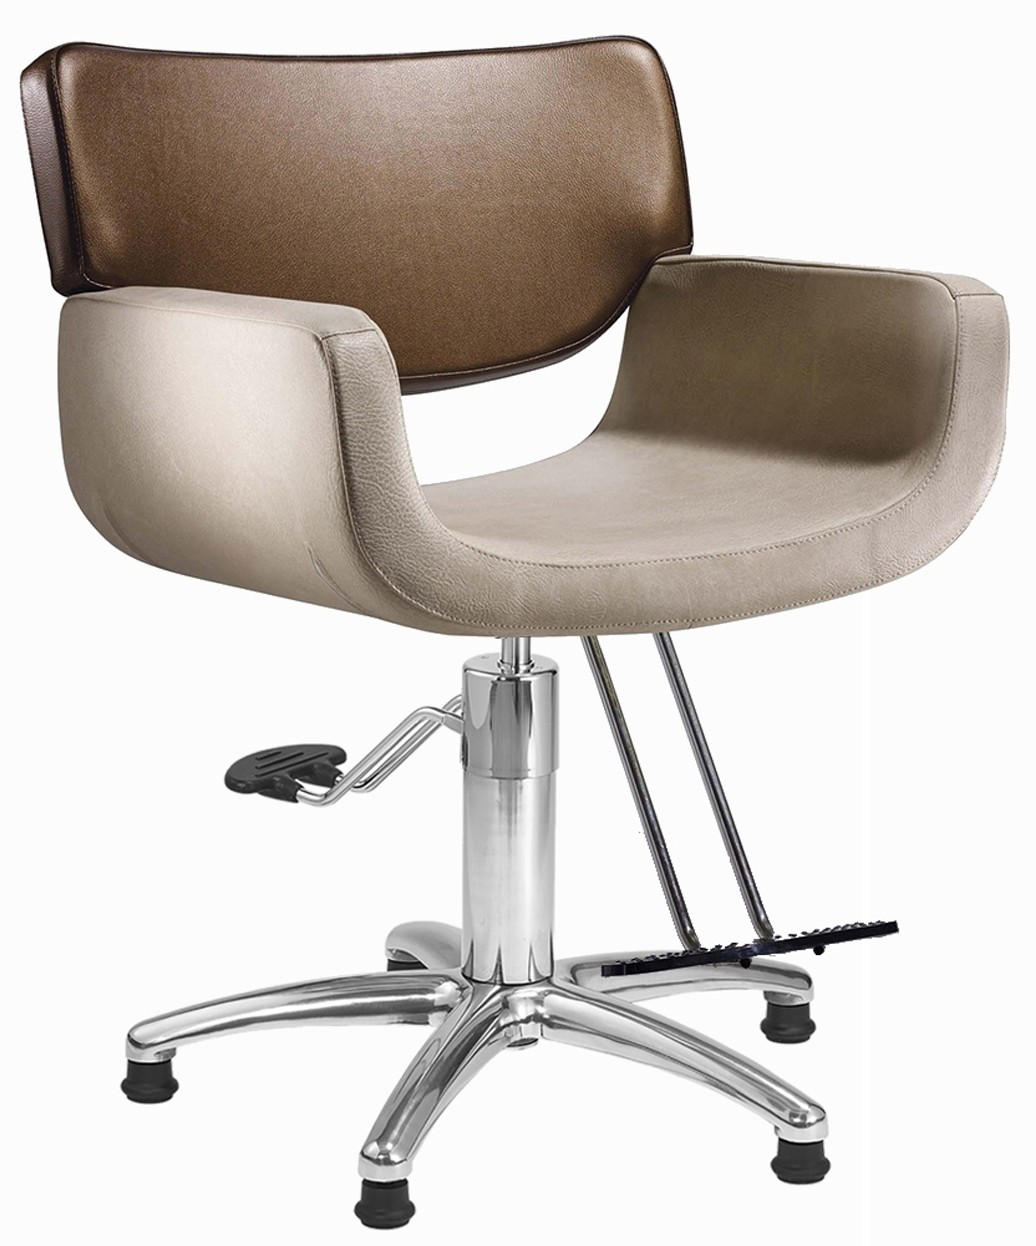 Salon Ambience SH-790 Quadro Styling Chair